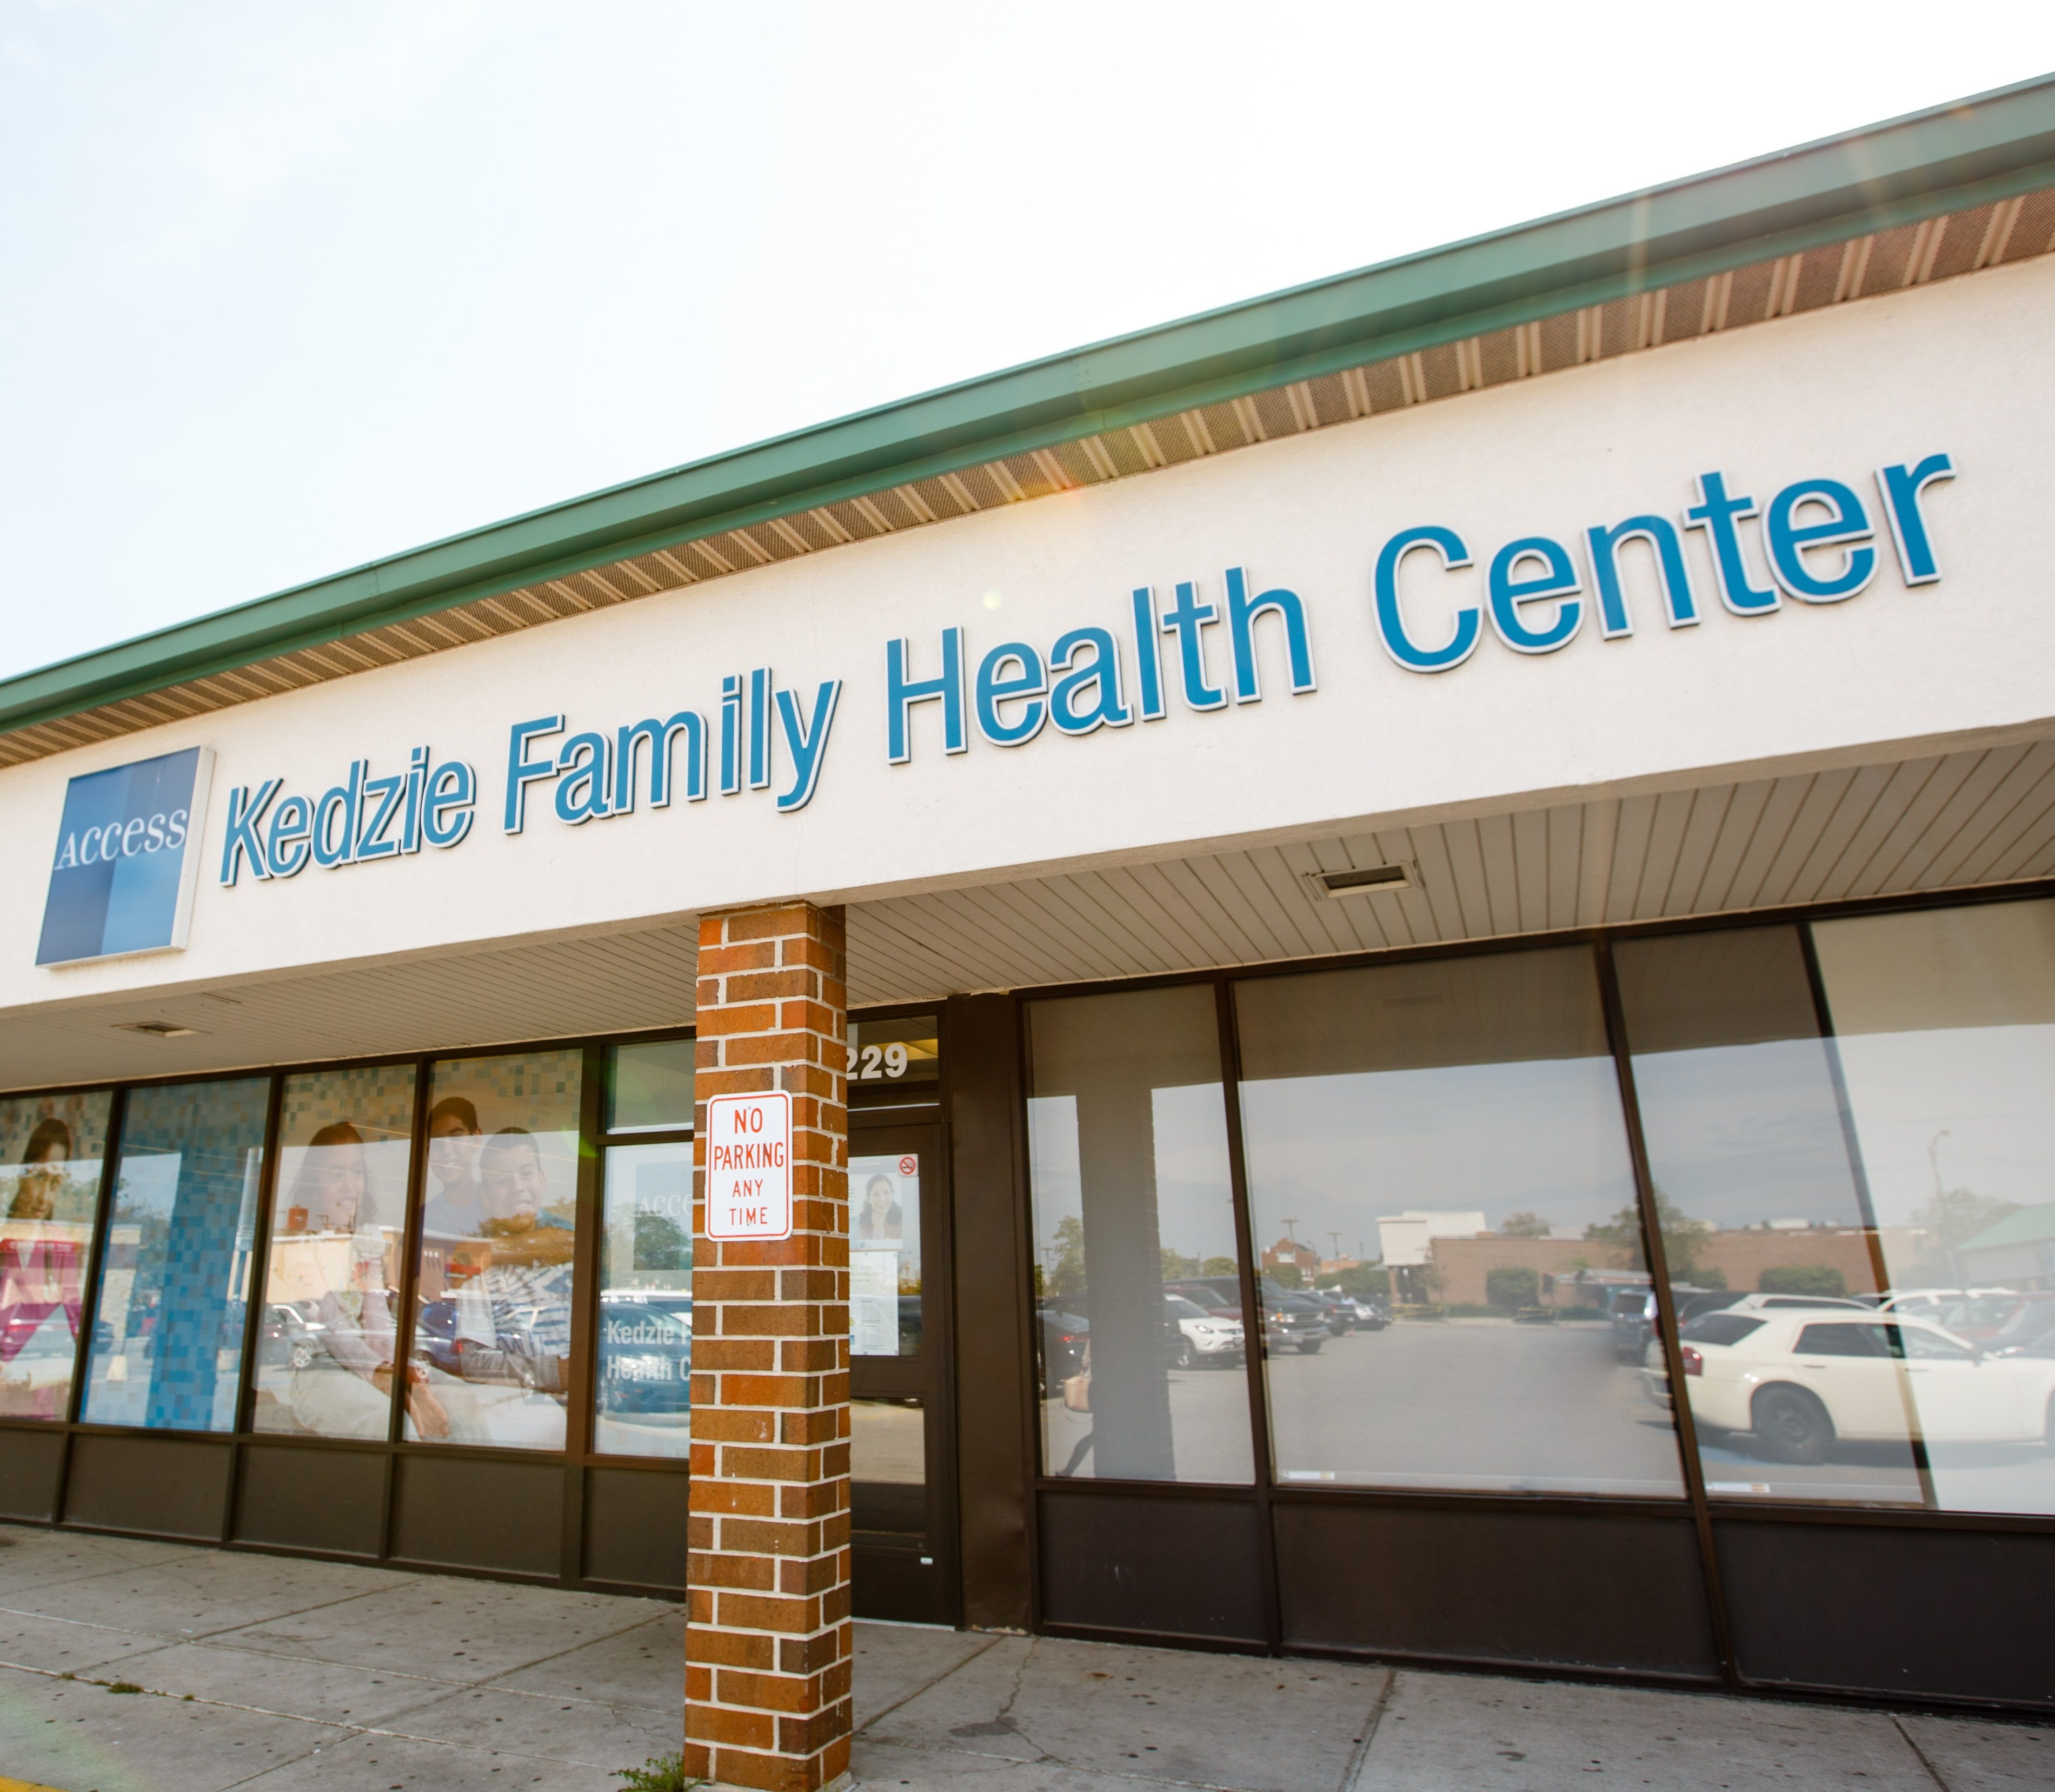 Kedzie Family Health Center